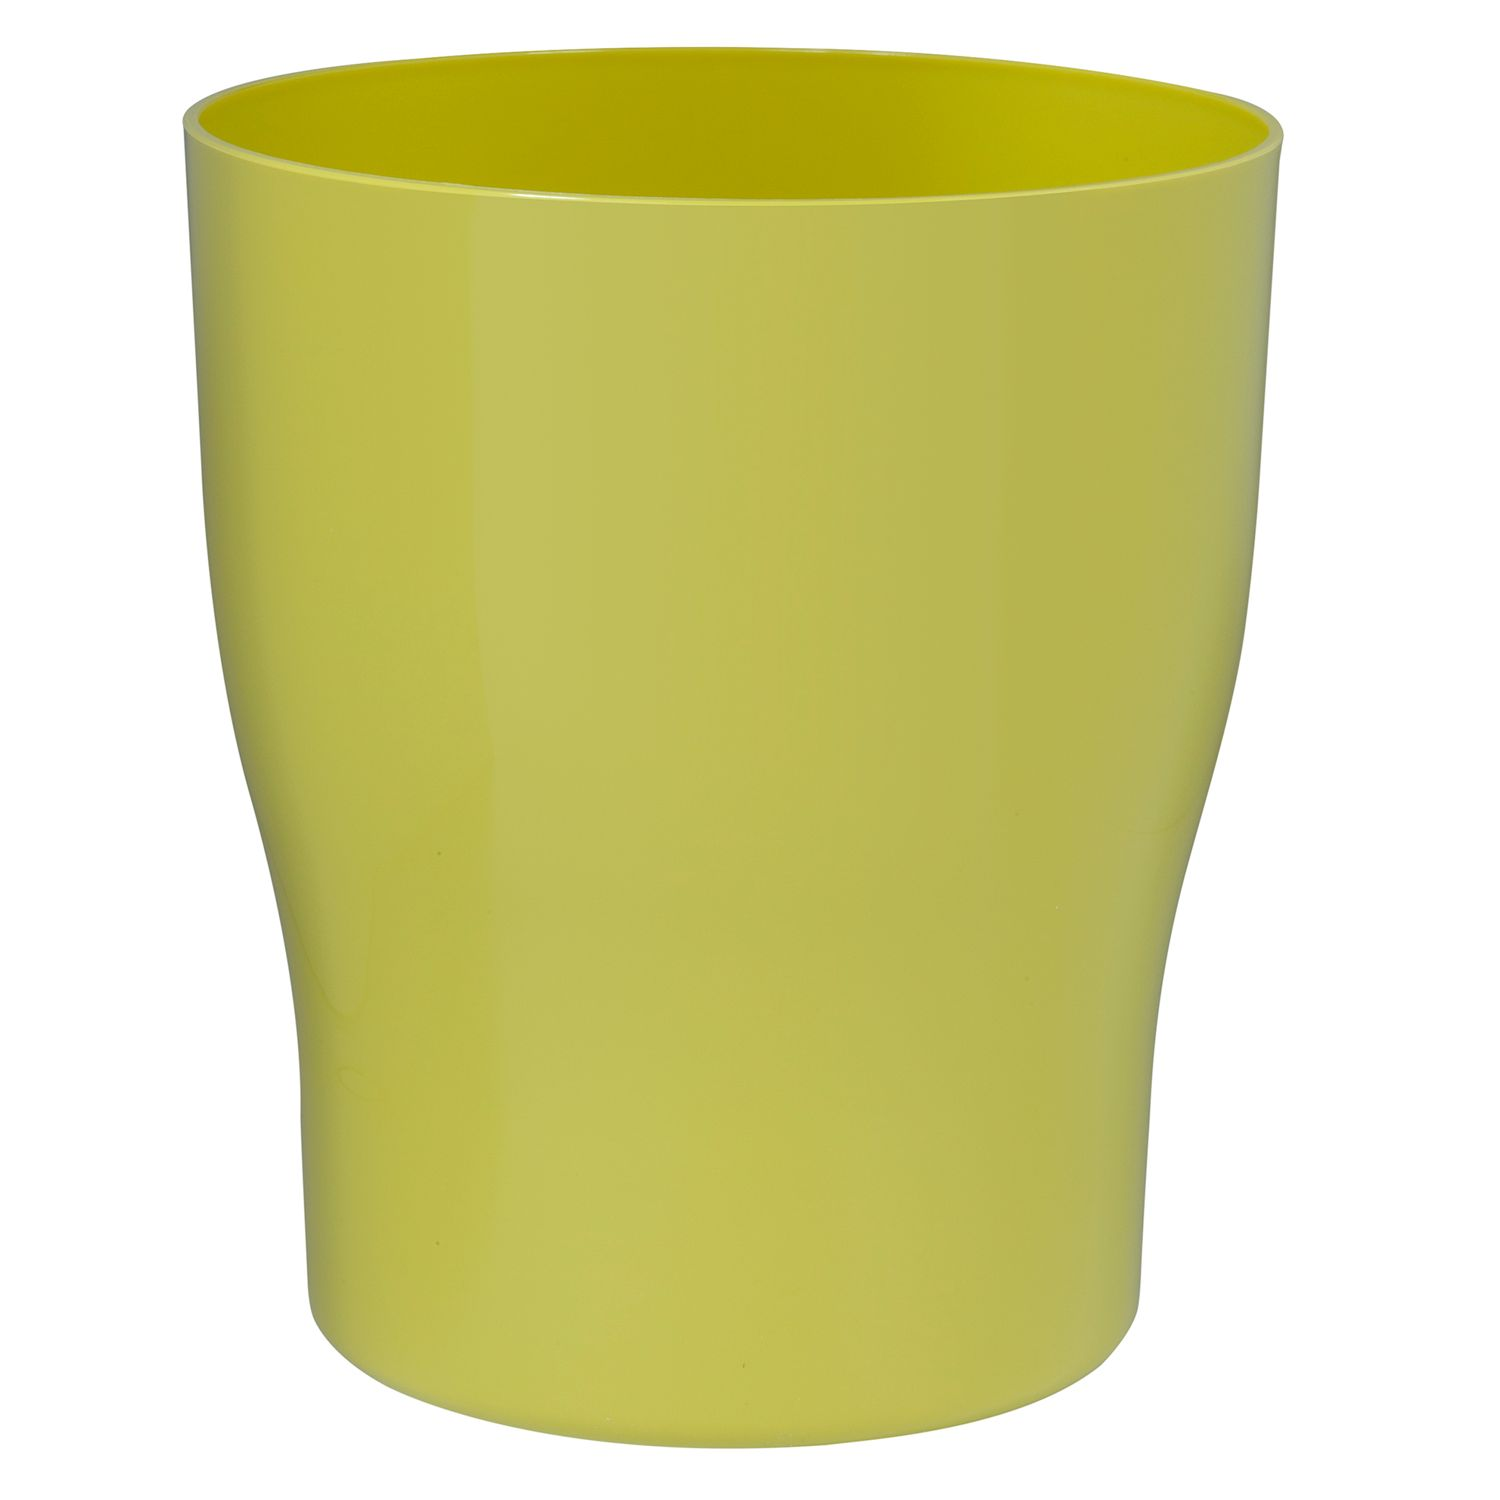 Delicieux Creative Bath Gem Wastebasket